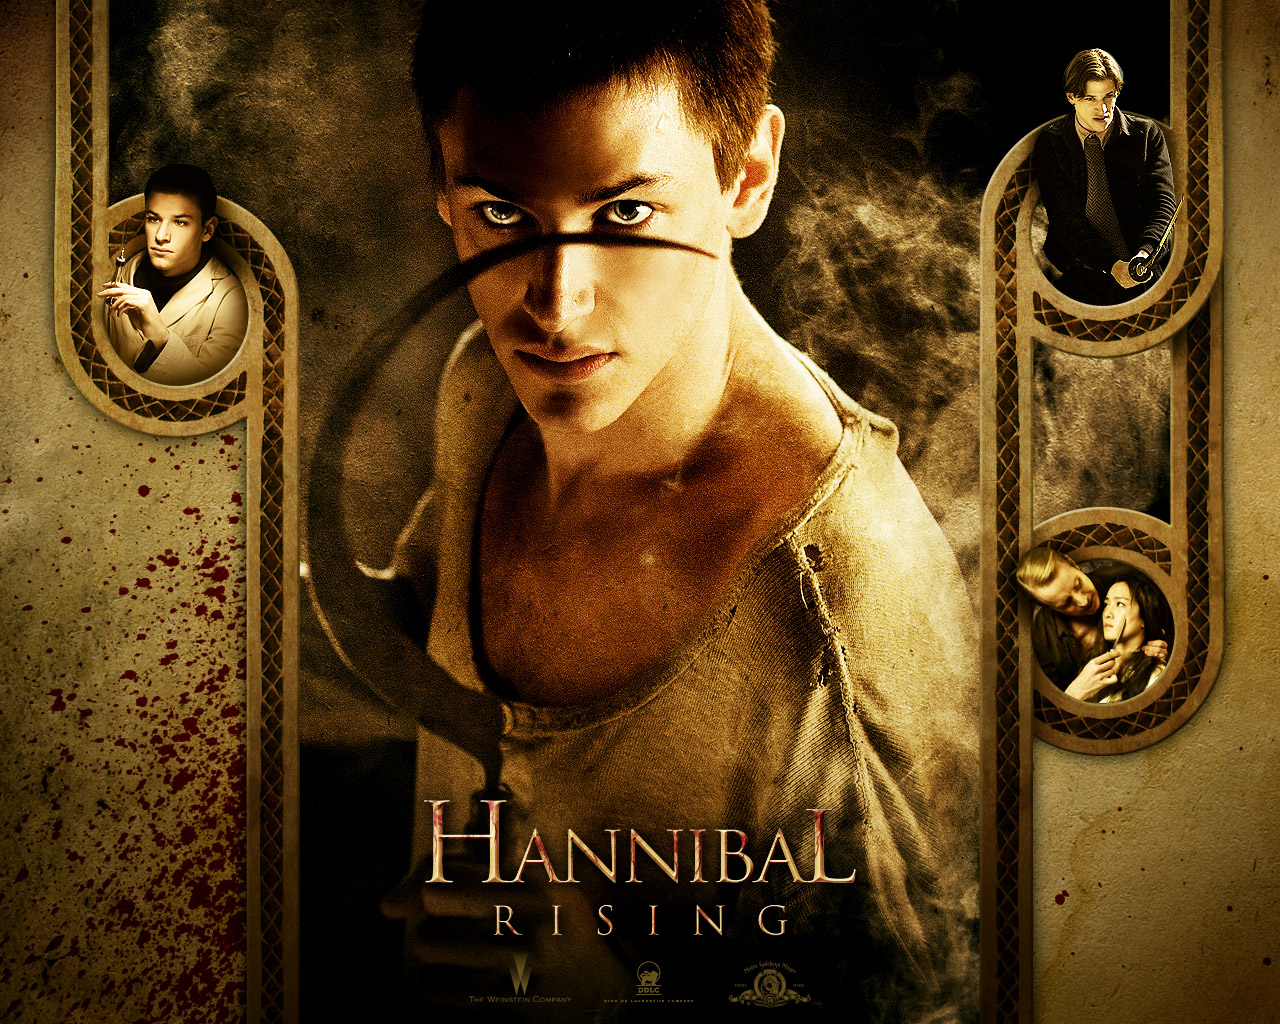 Hannibal Rising: Movie Review! Read to know